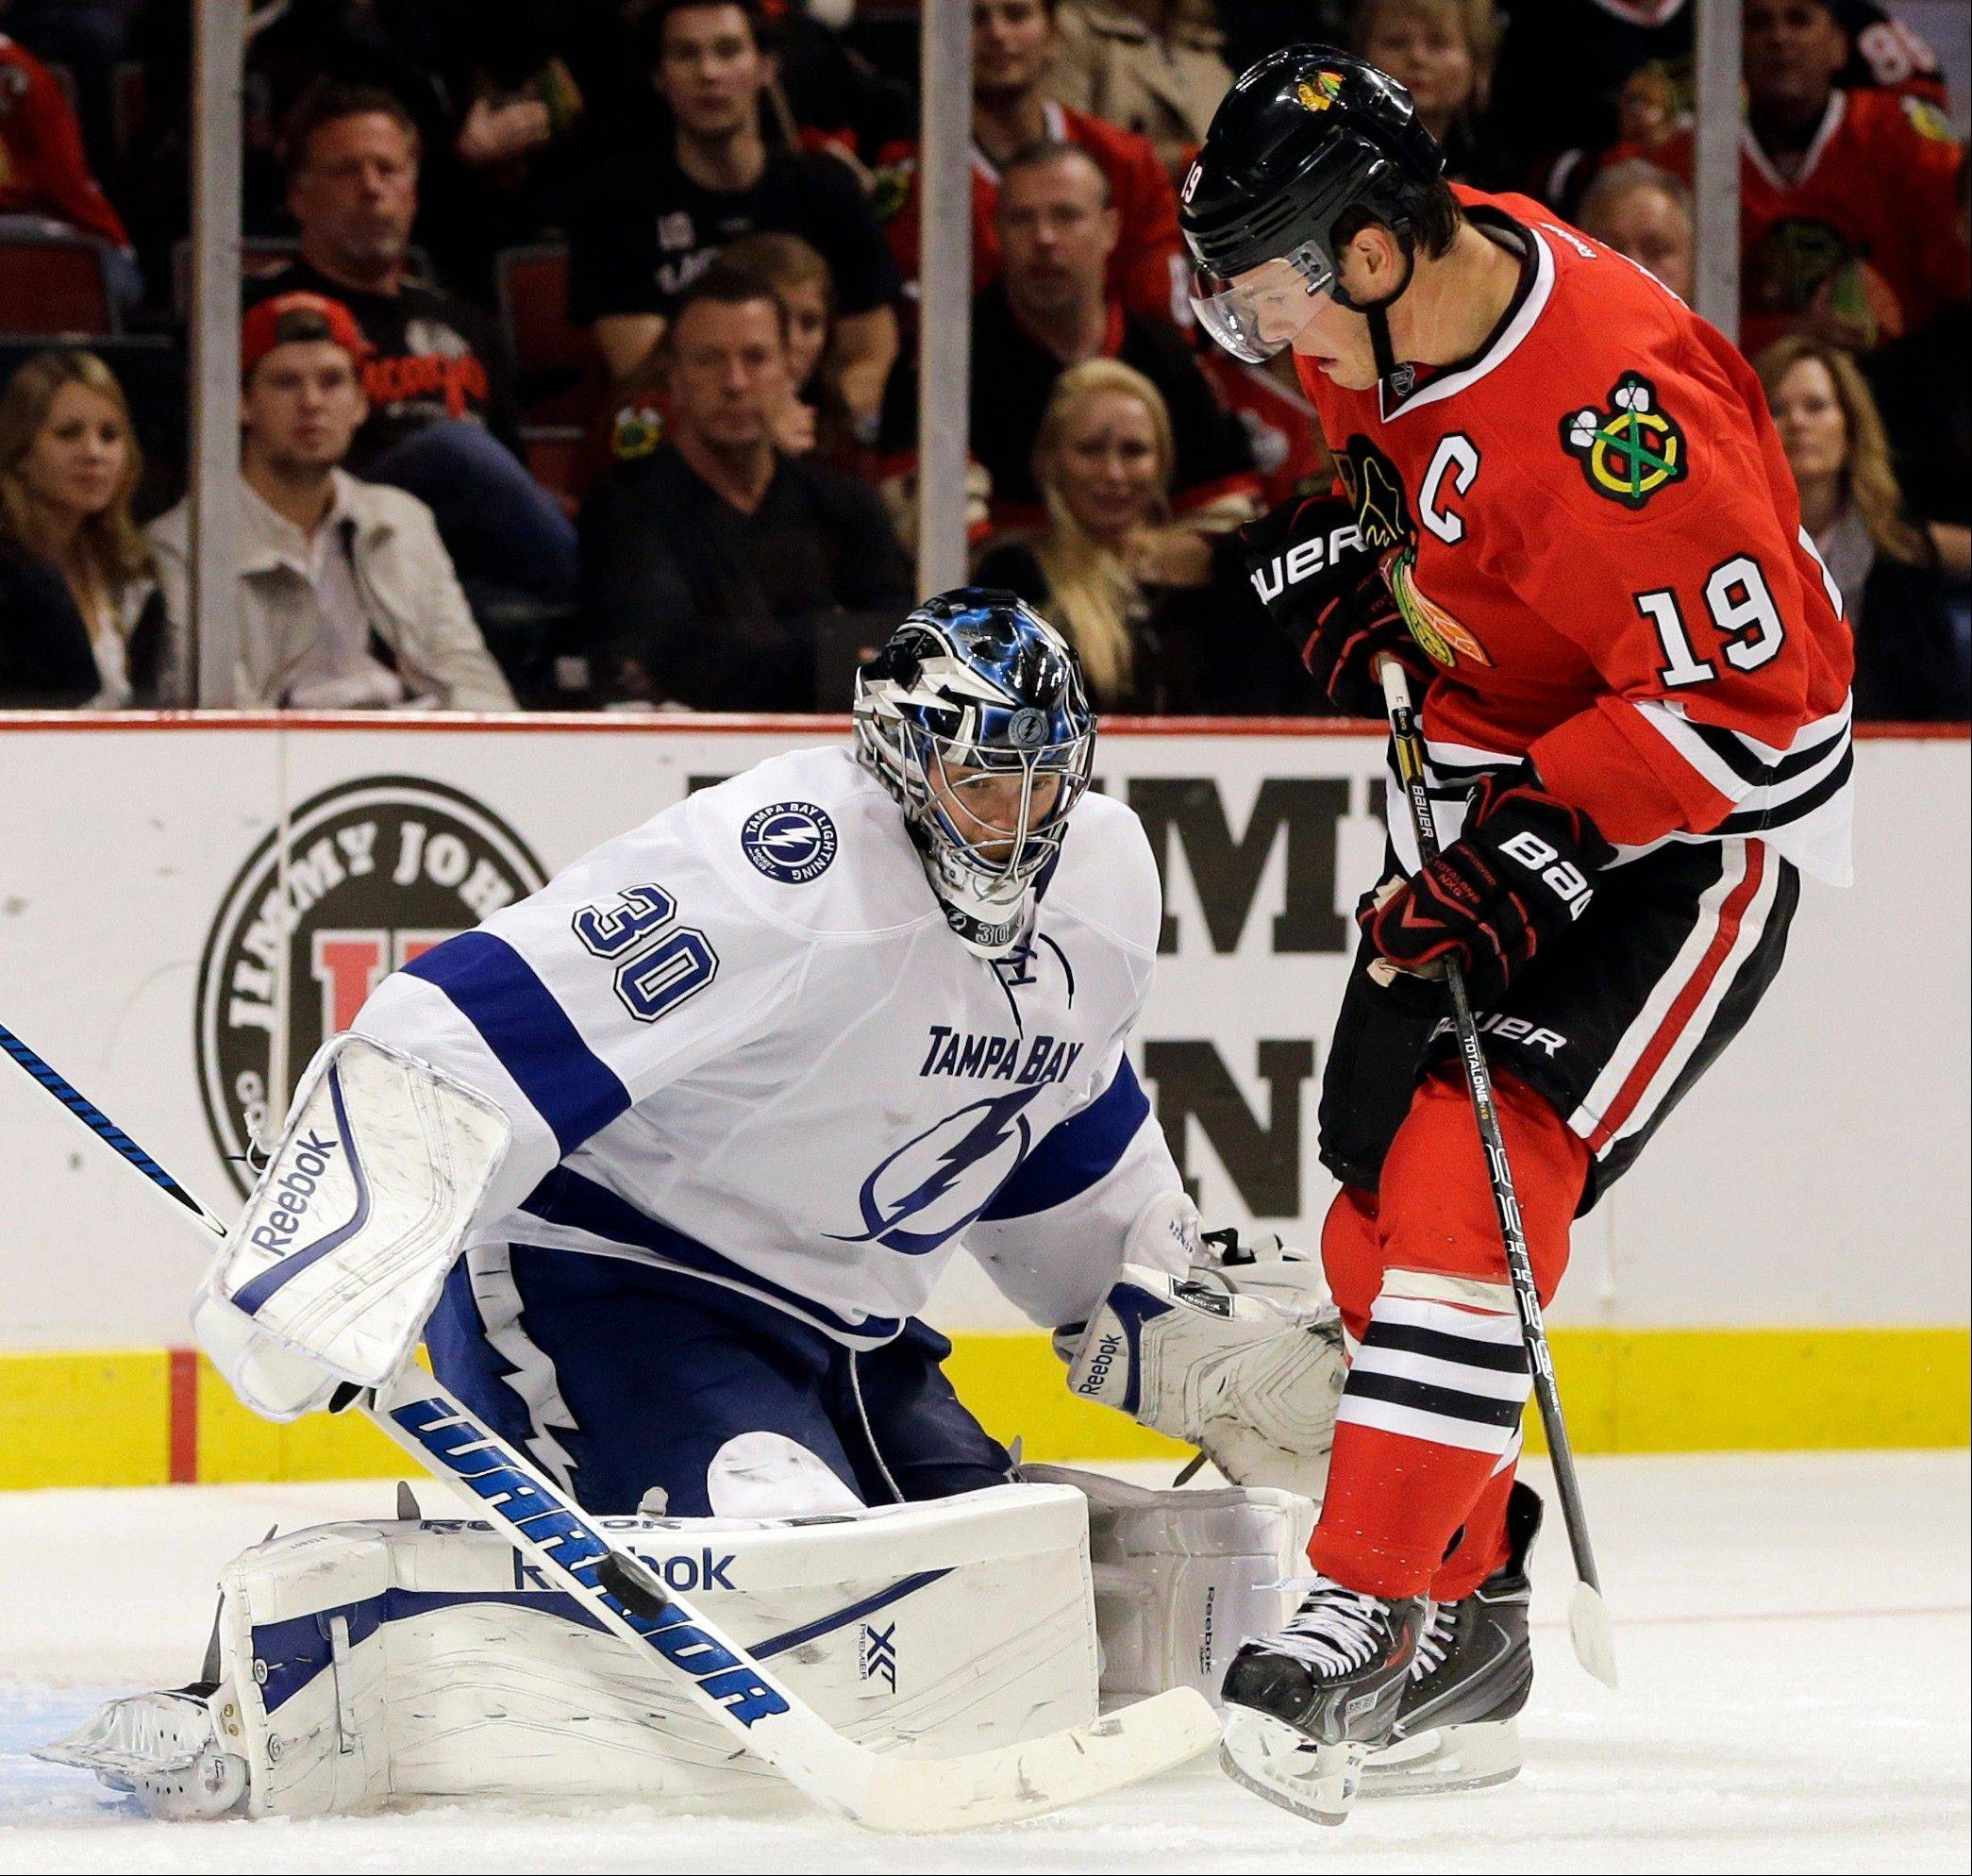 Lightning goalie Ben Bishop blocks a shot by the Blackhawks' Jonathan Toews during the second period Saturday night at the United Center.